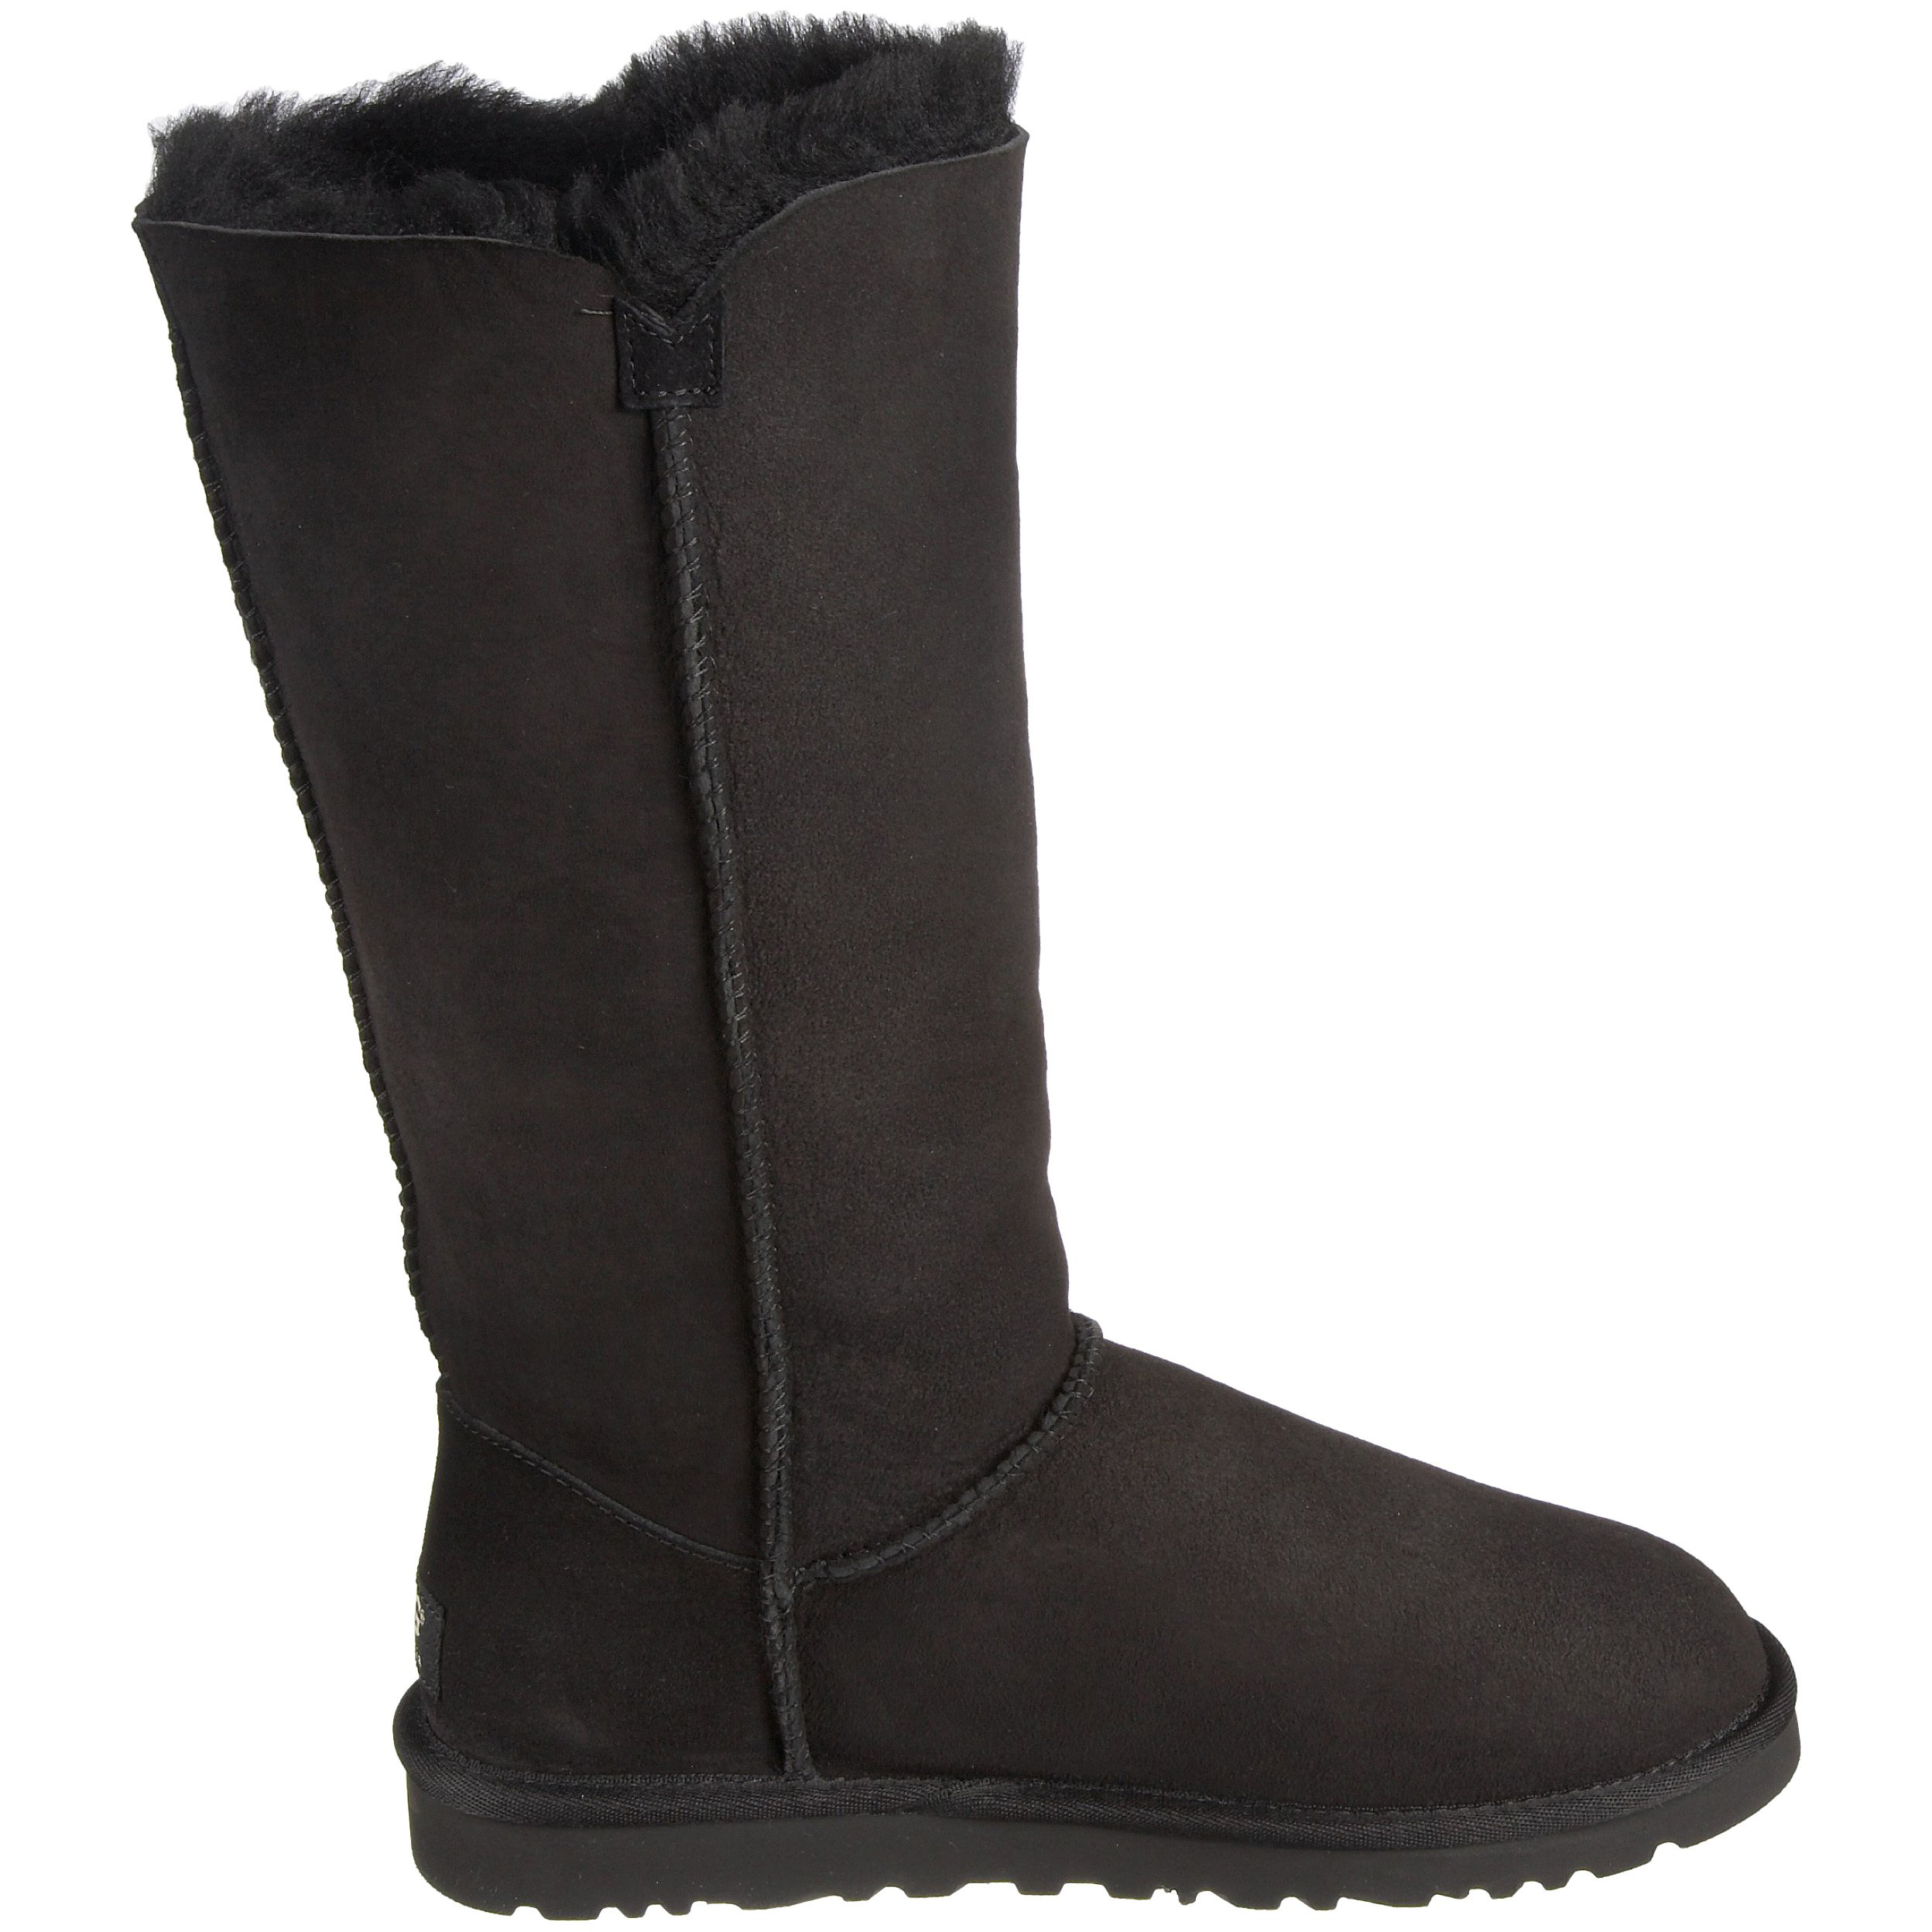 Ugg Women's Bailey Button Triplet Boot, Black, 6 M US by UGG (Image #7)